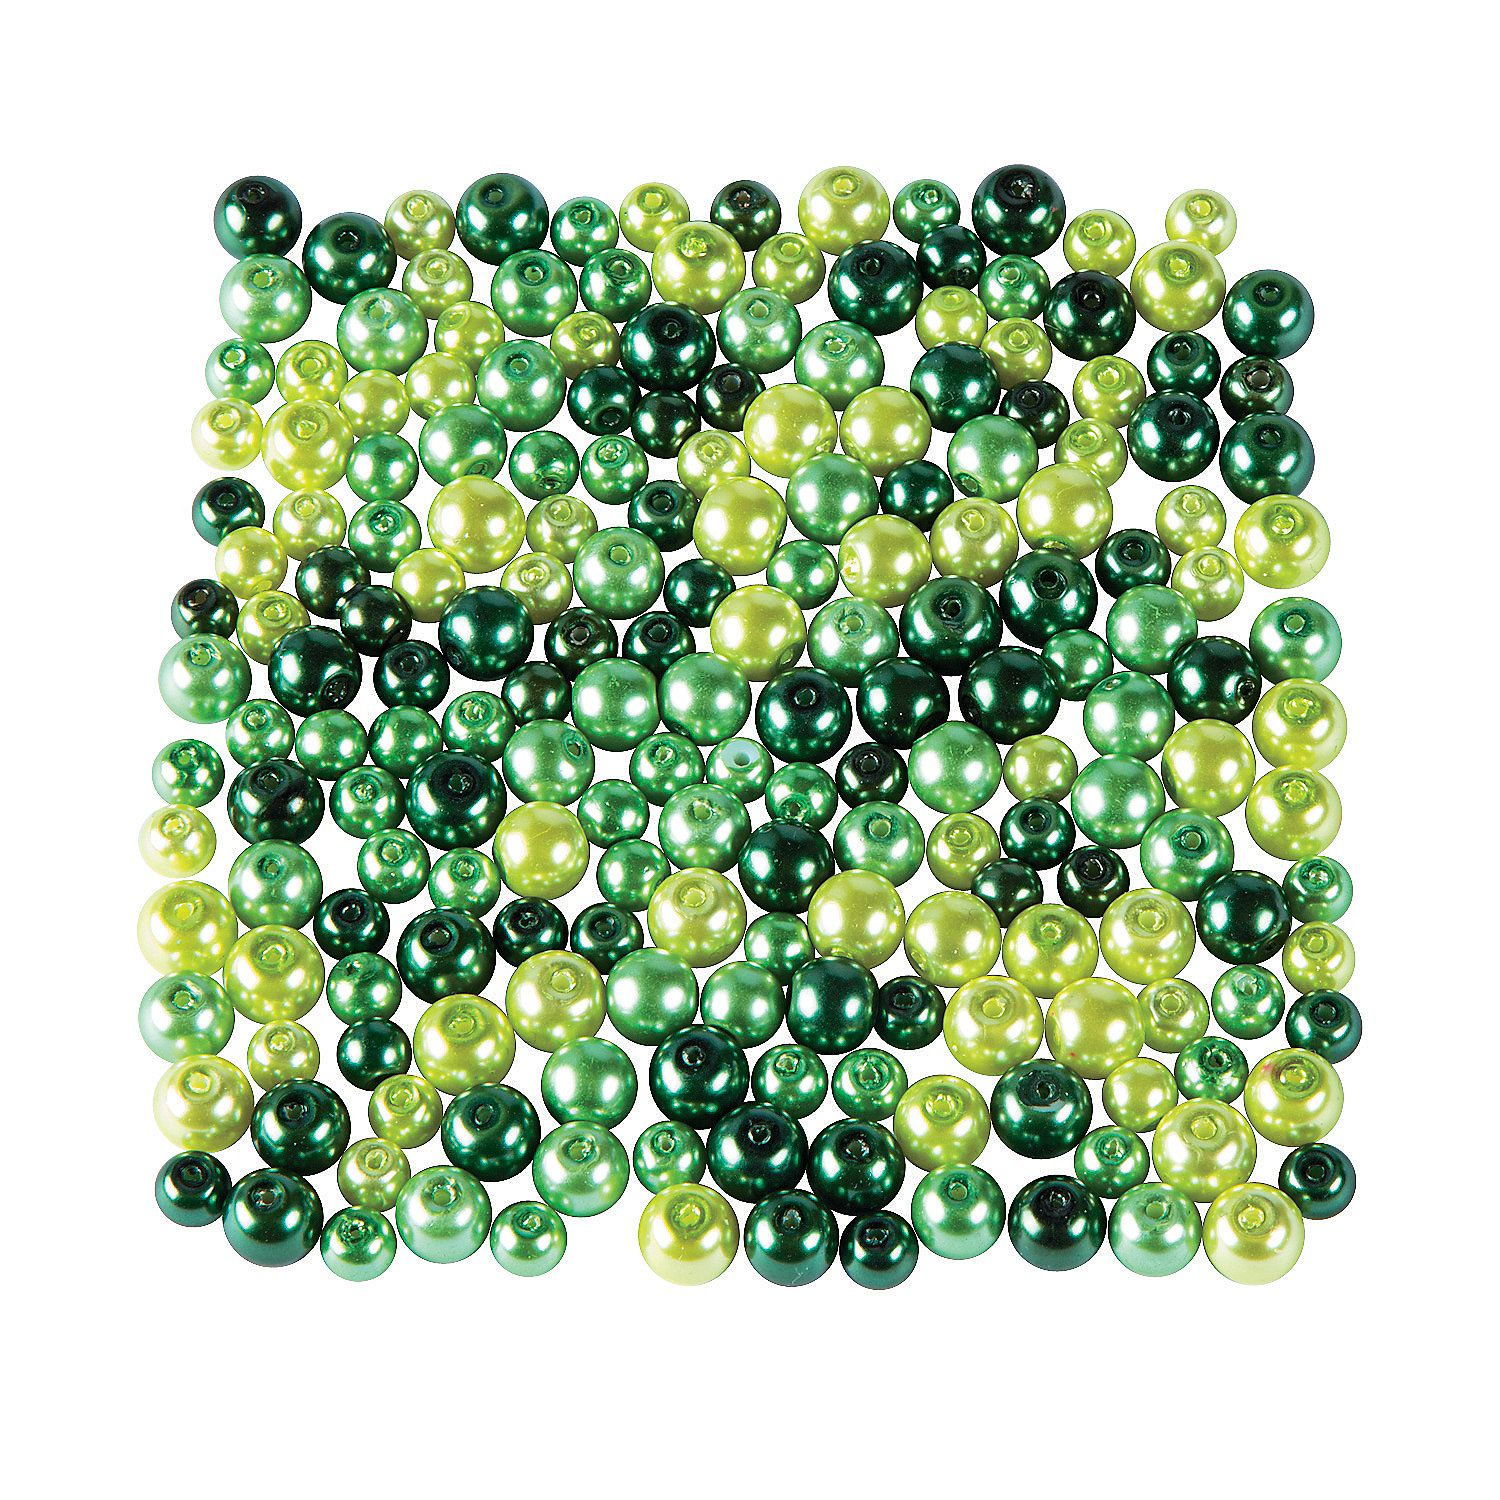 picture of green furniture pearls rice